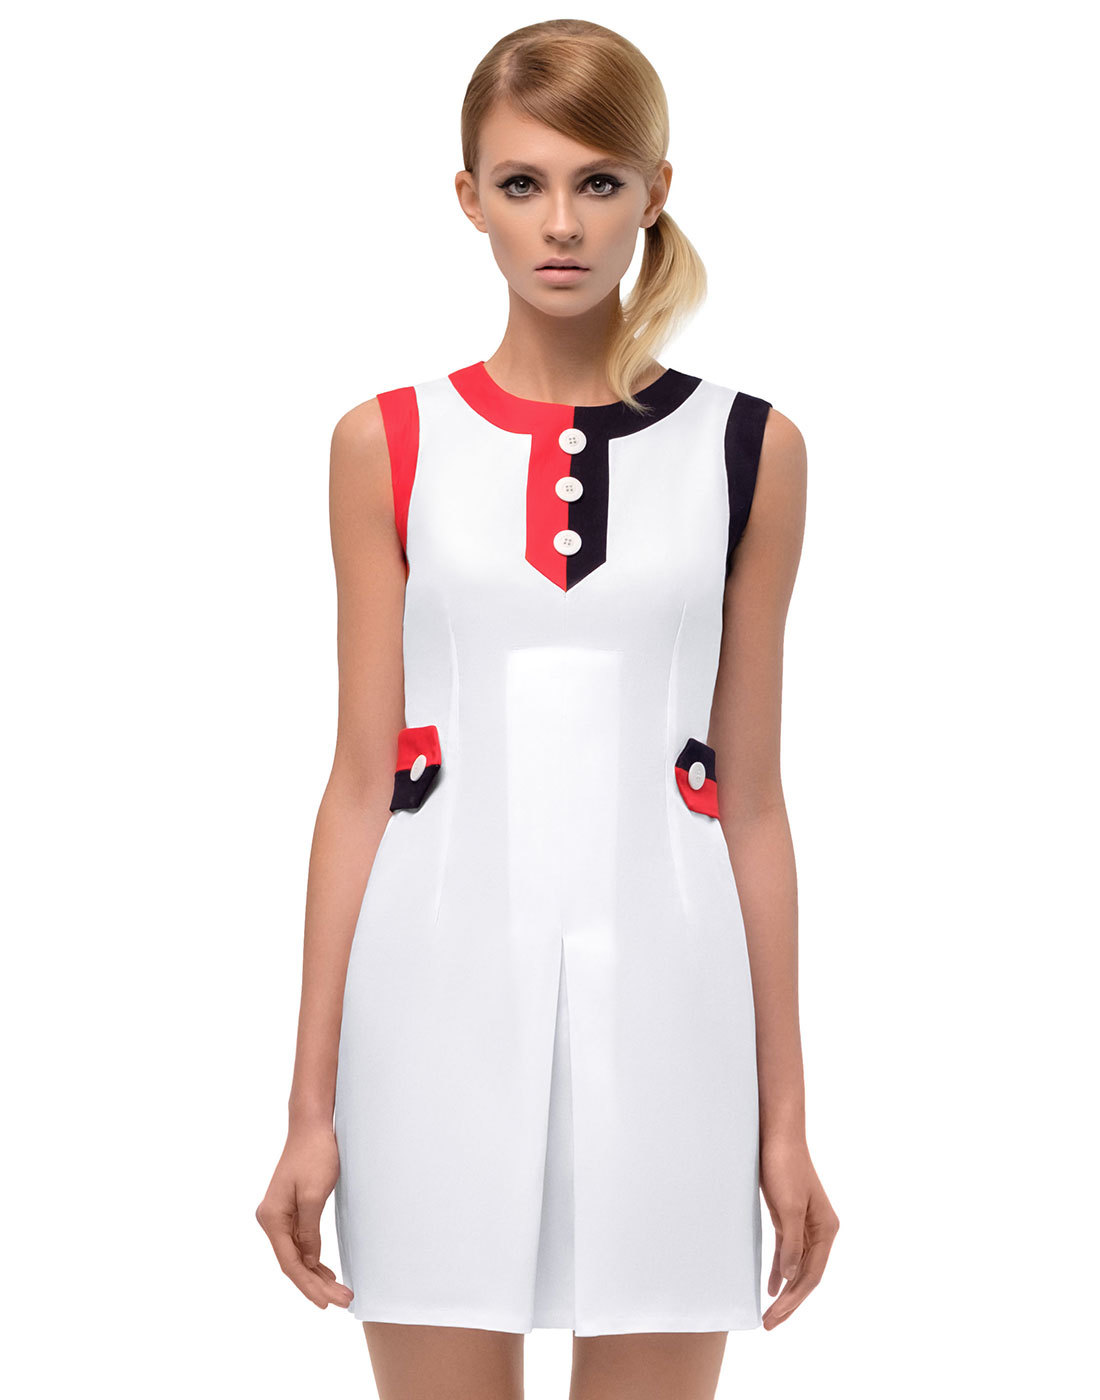 MARMALADE 1960s Mod Tennis Style Front Pleat Dress